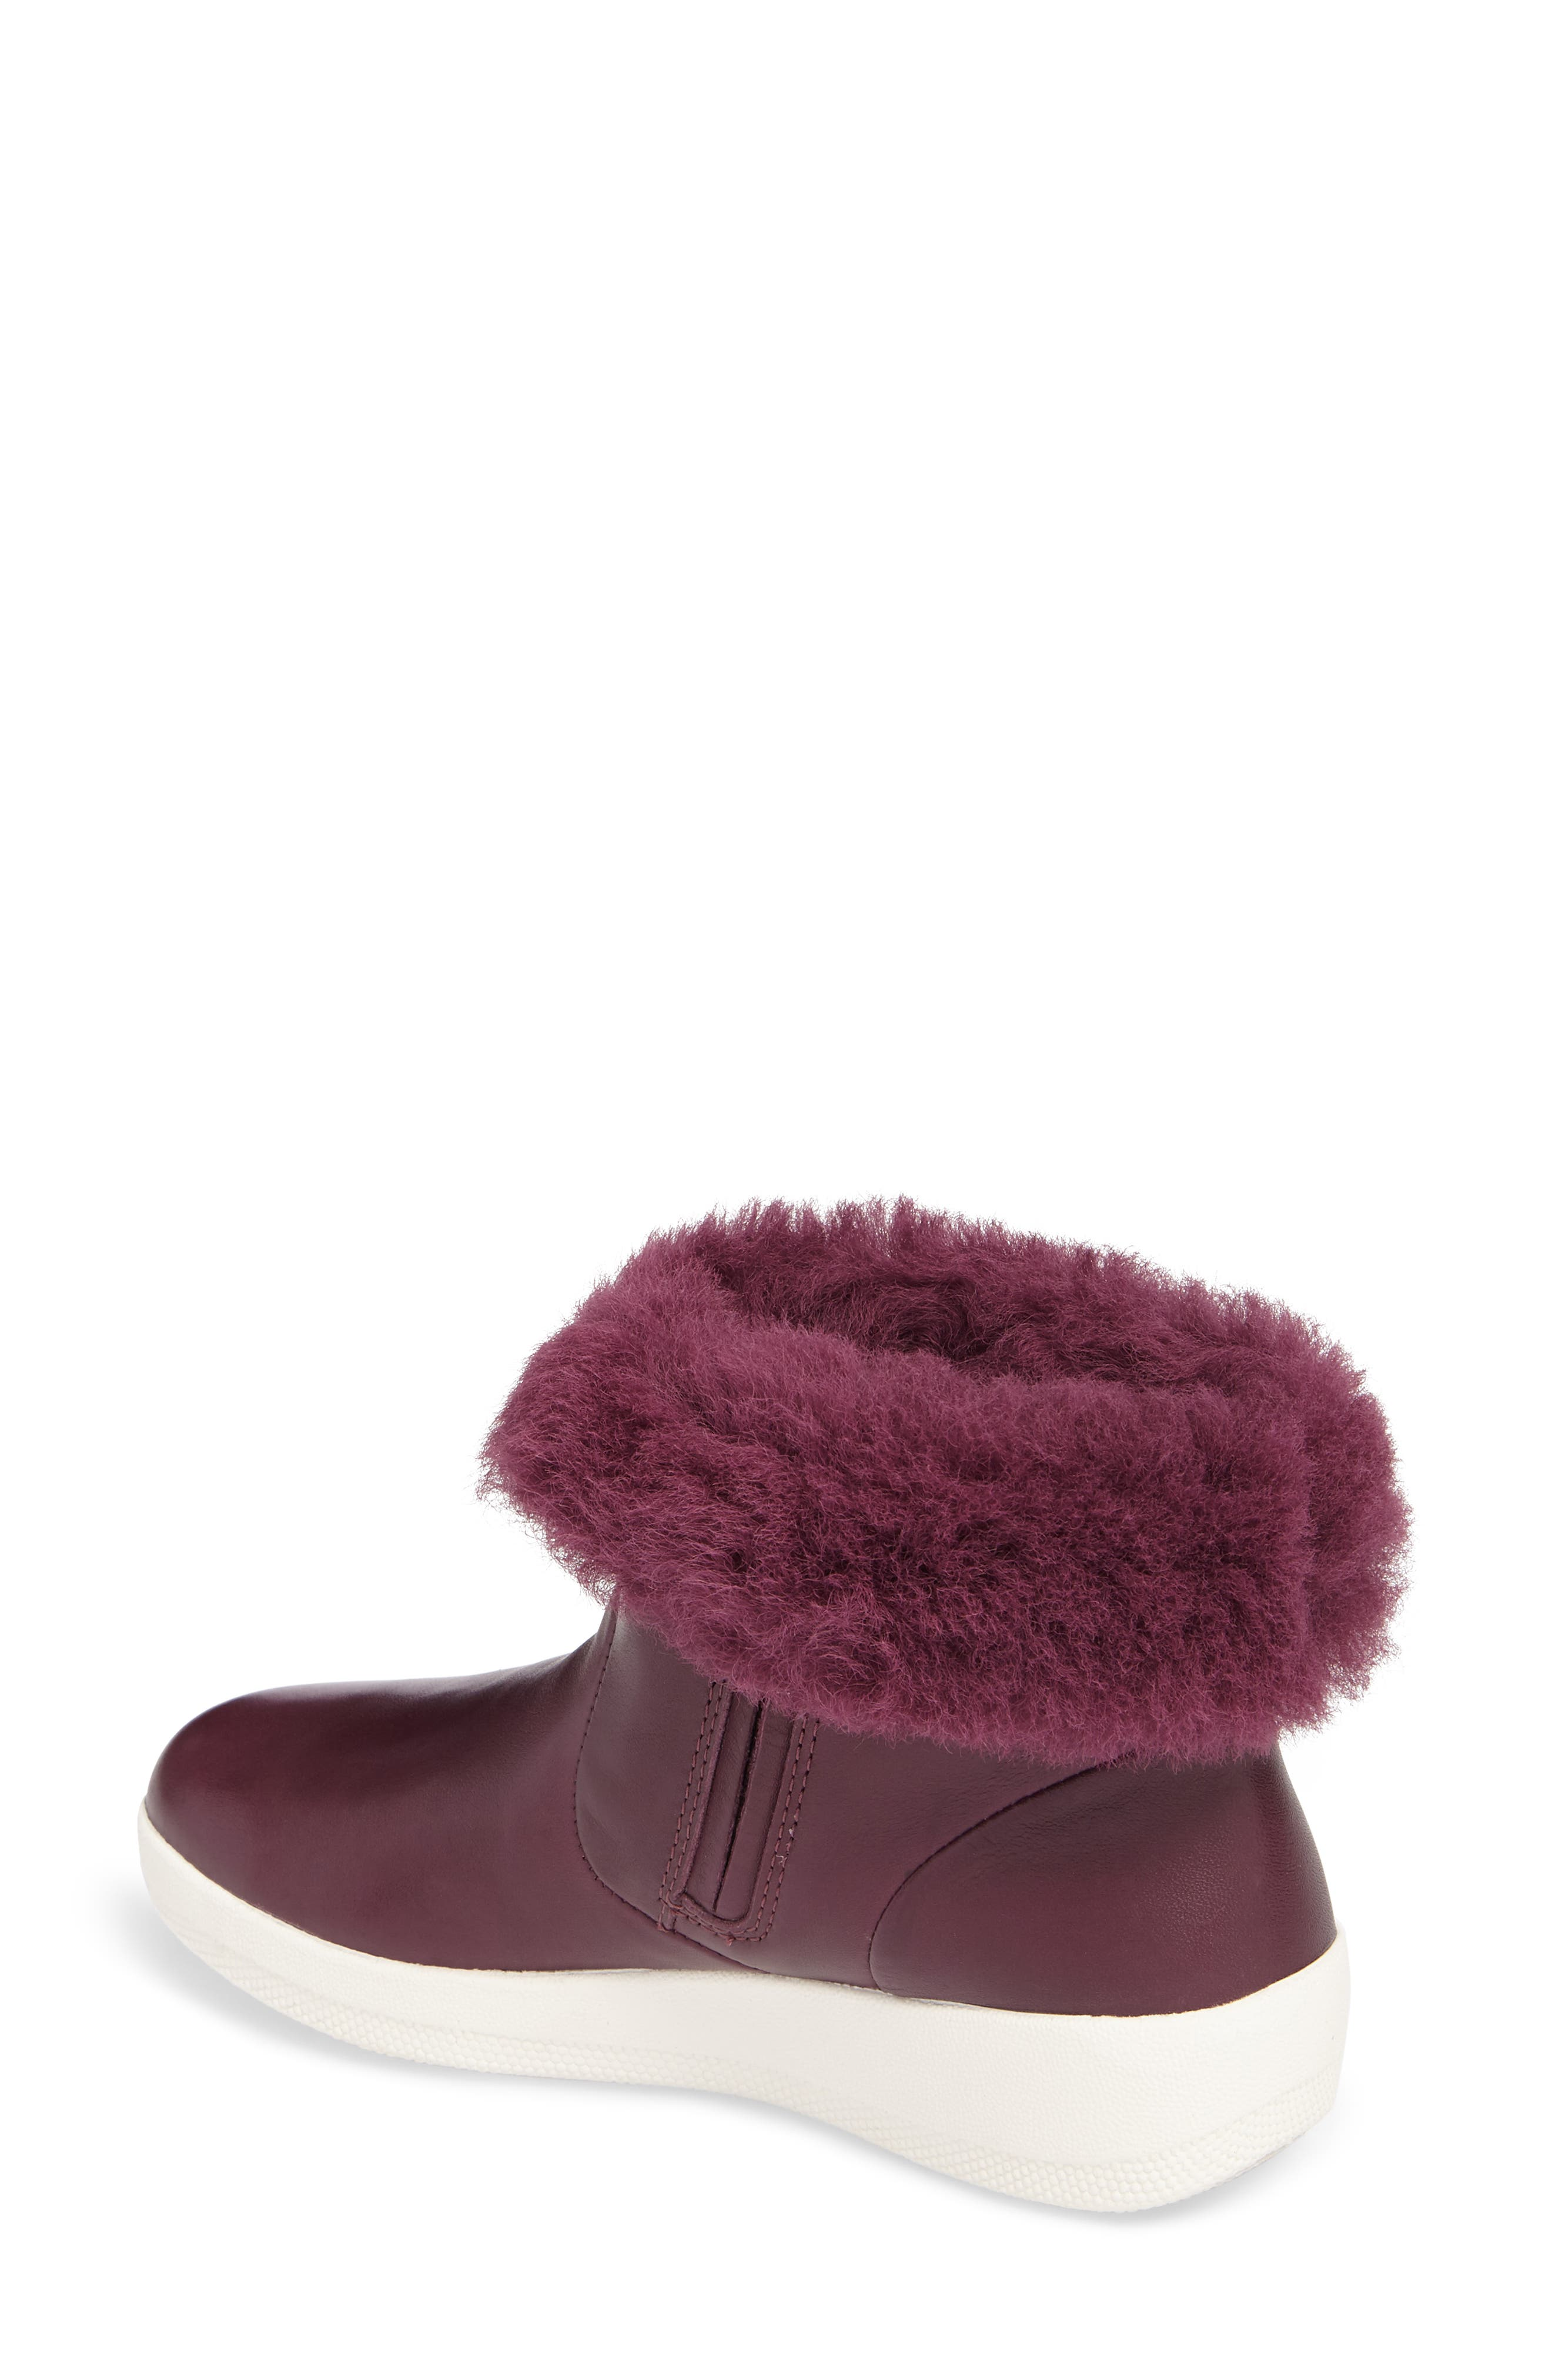 Skatebootie<sup>™</sup> with Genuine Shearling Cuff,                             Alternate thumbnail 4, color,